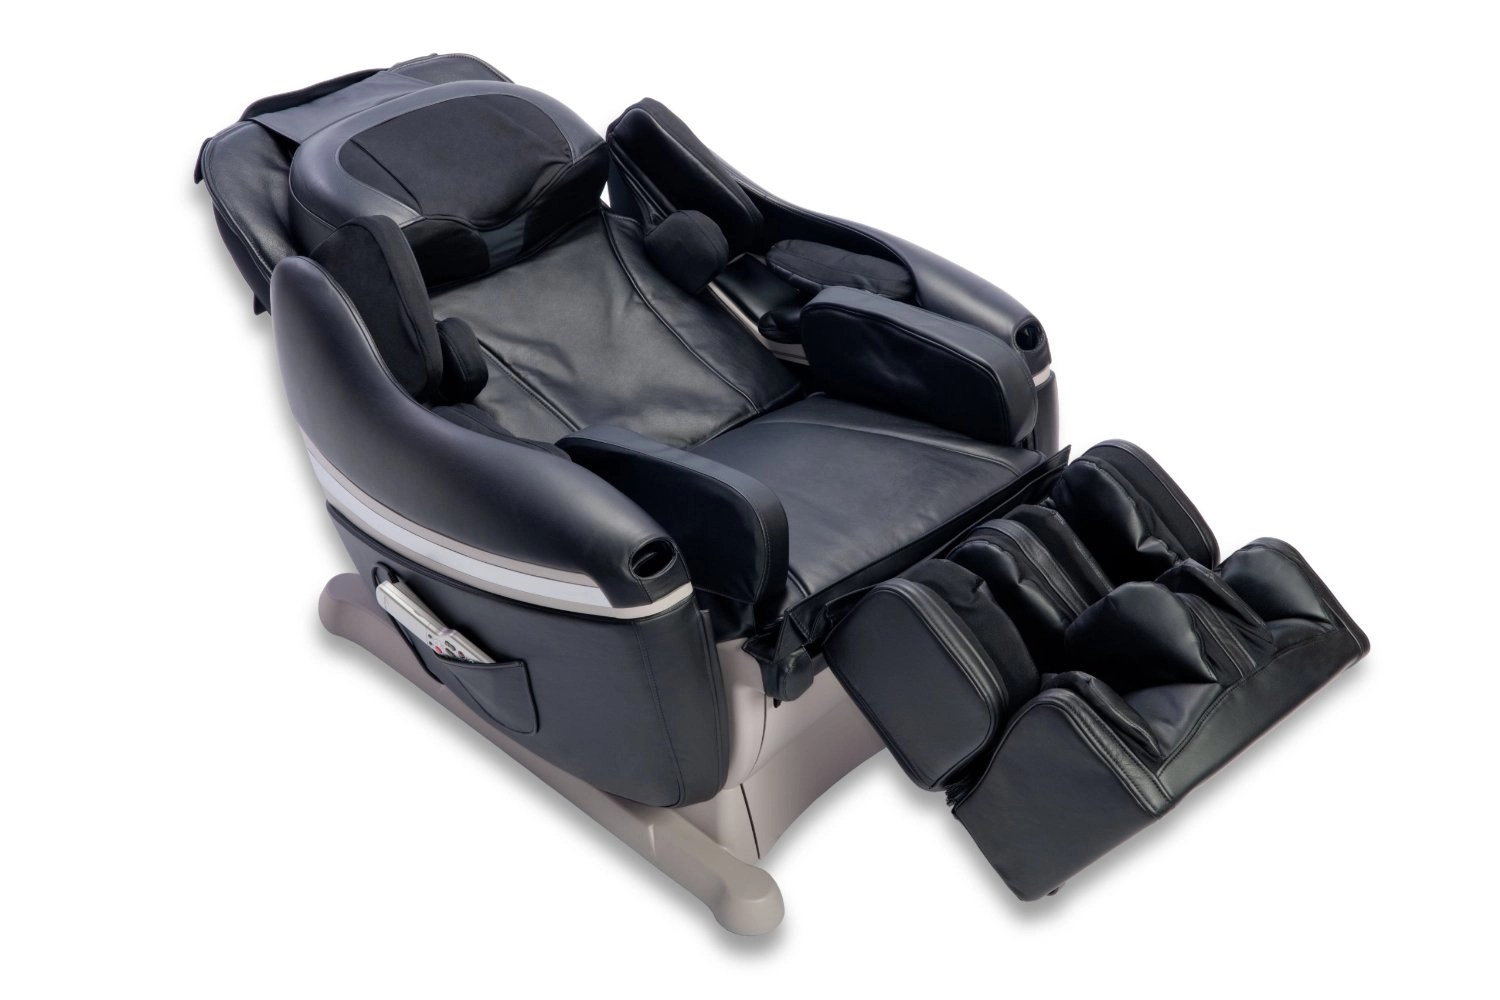 Inada Chair Inada Dreamwave Massage Chair Review